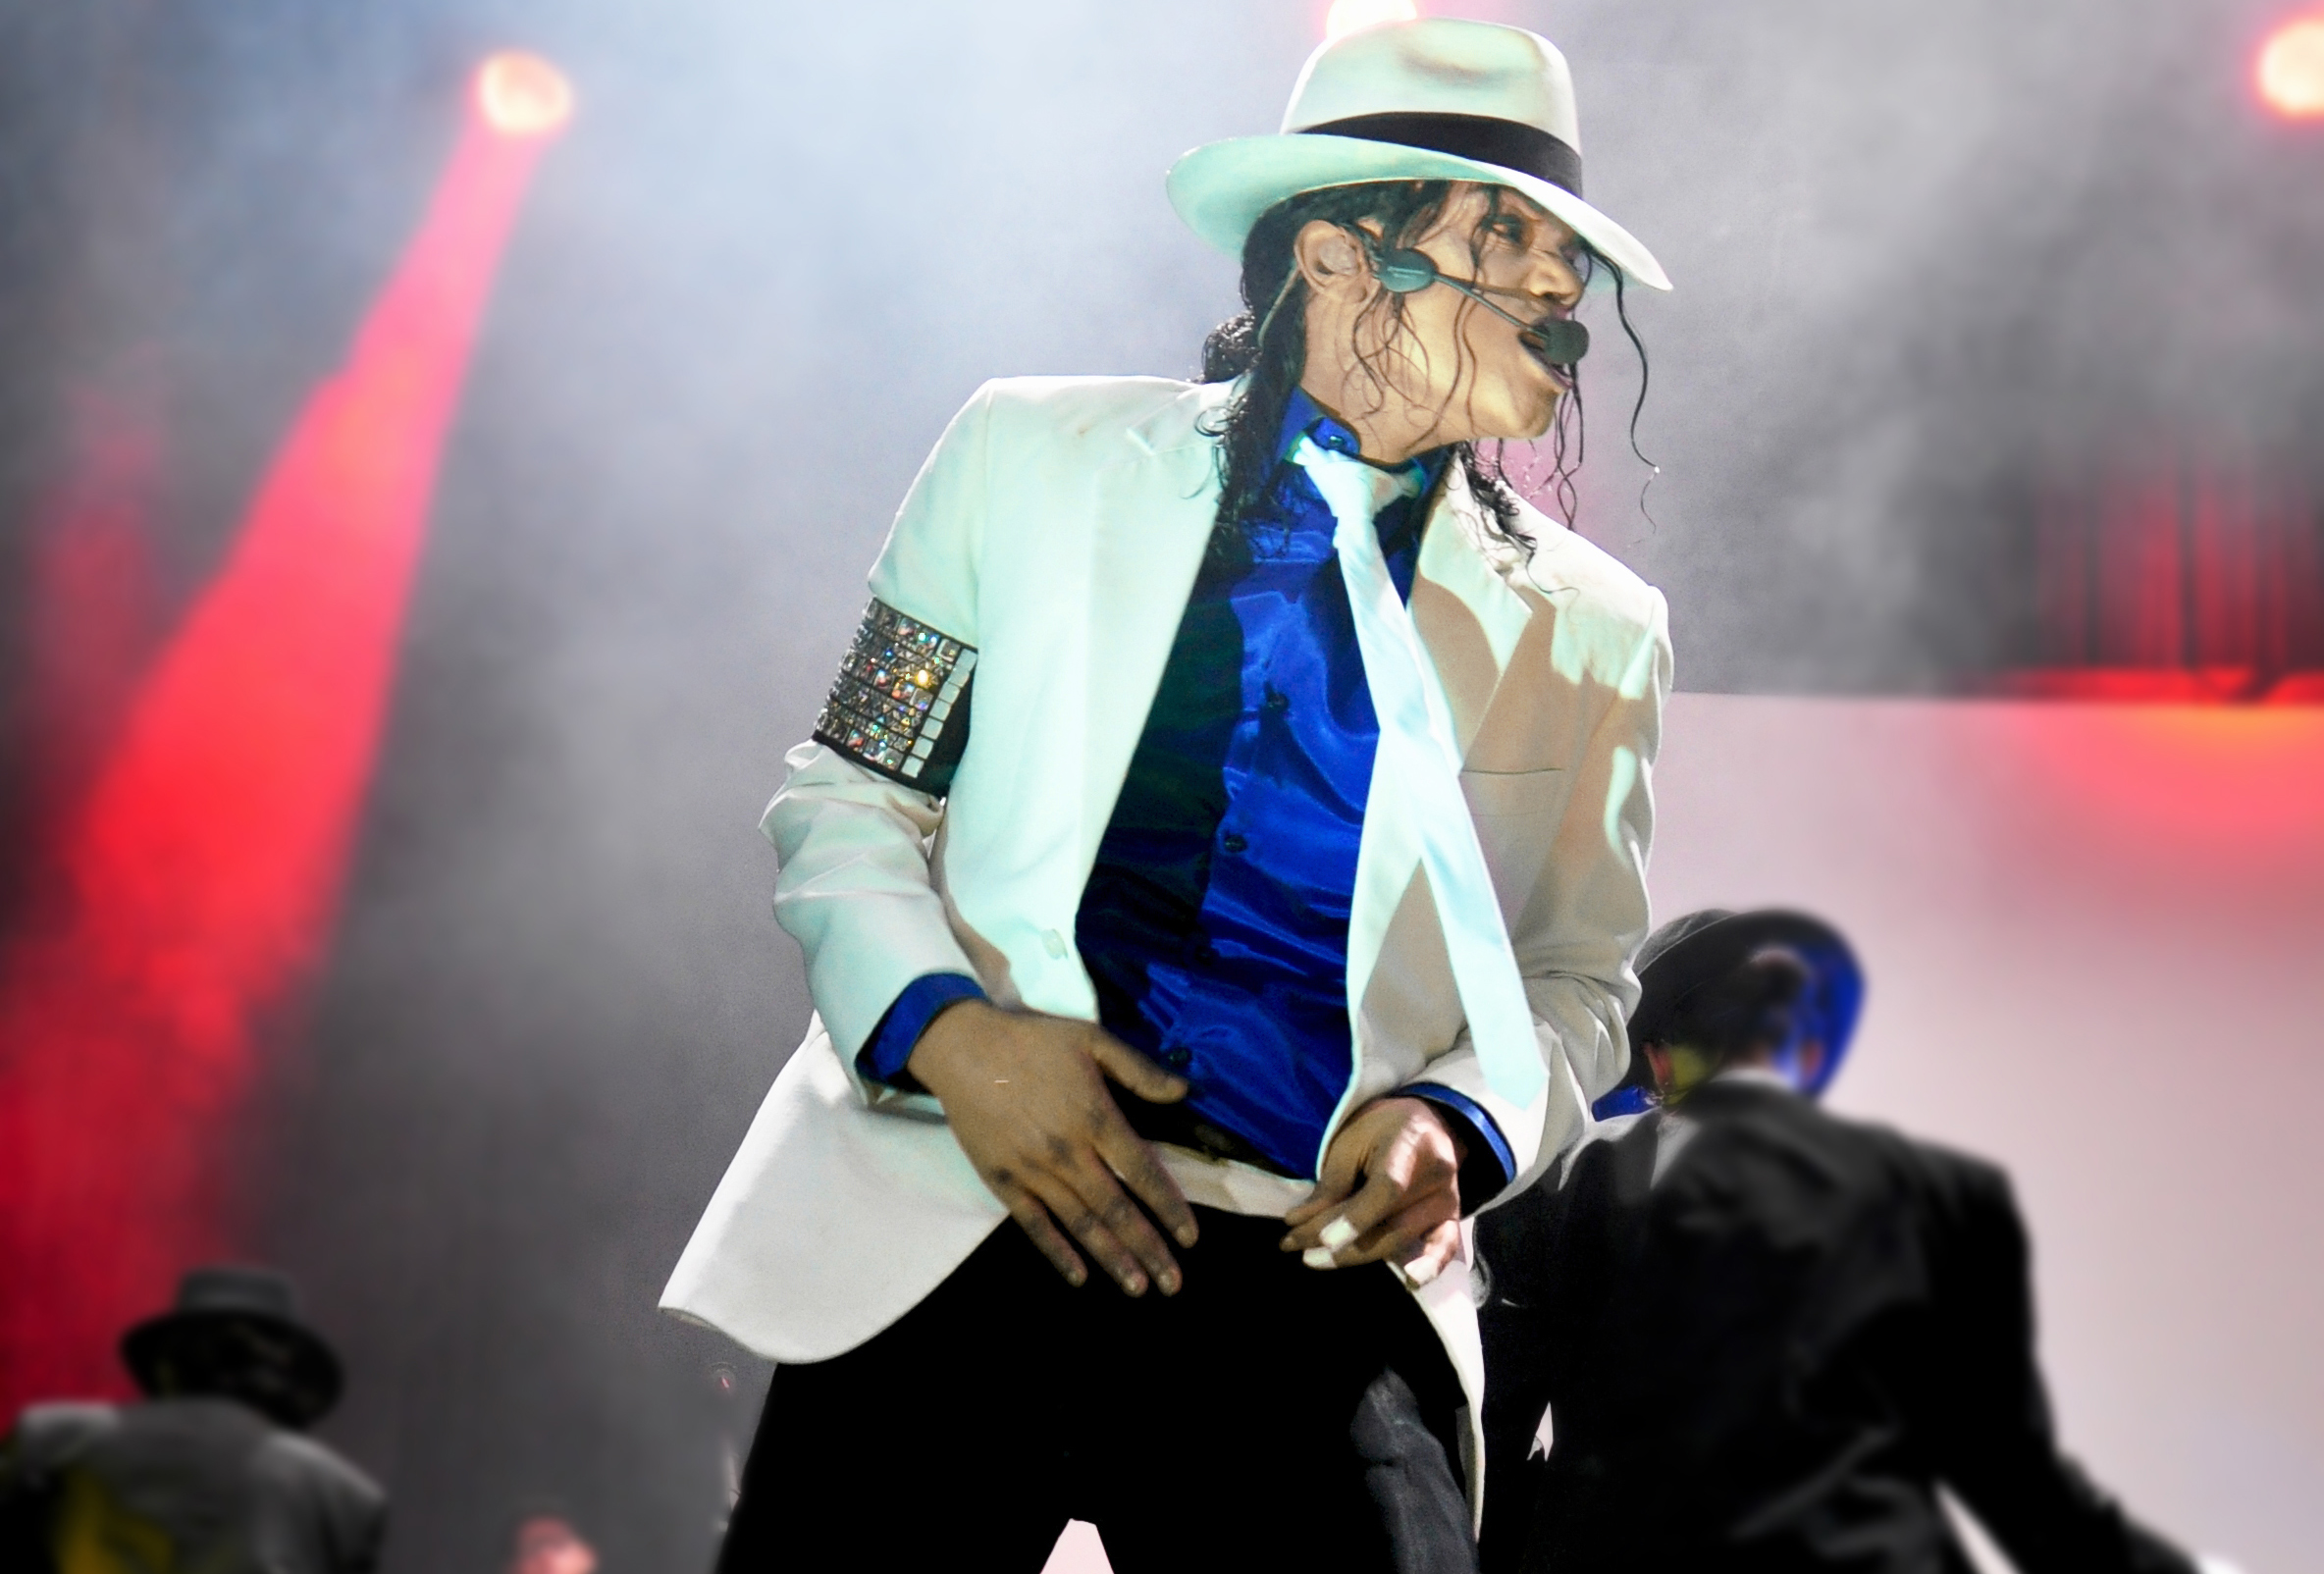 World's top MJ tribute is coming to Blackpool